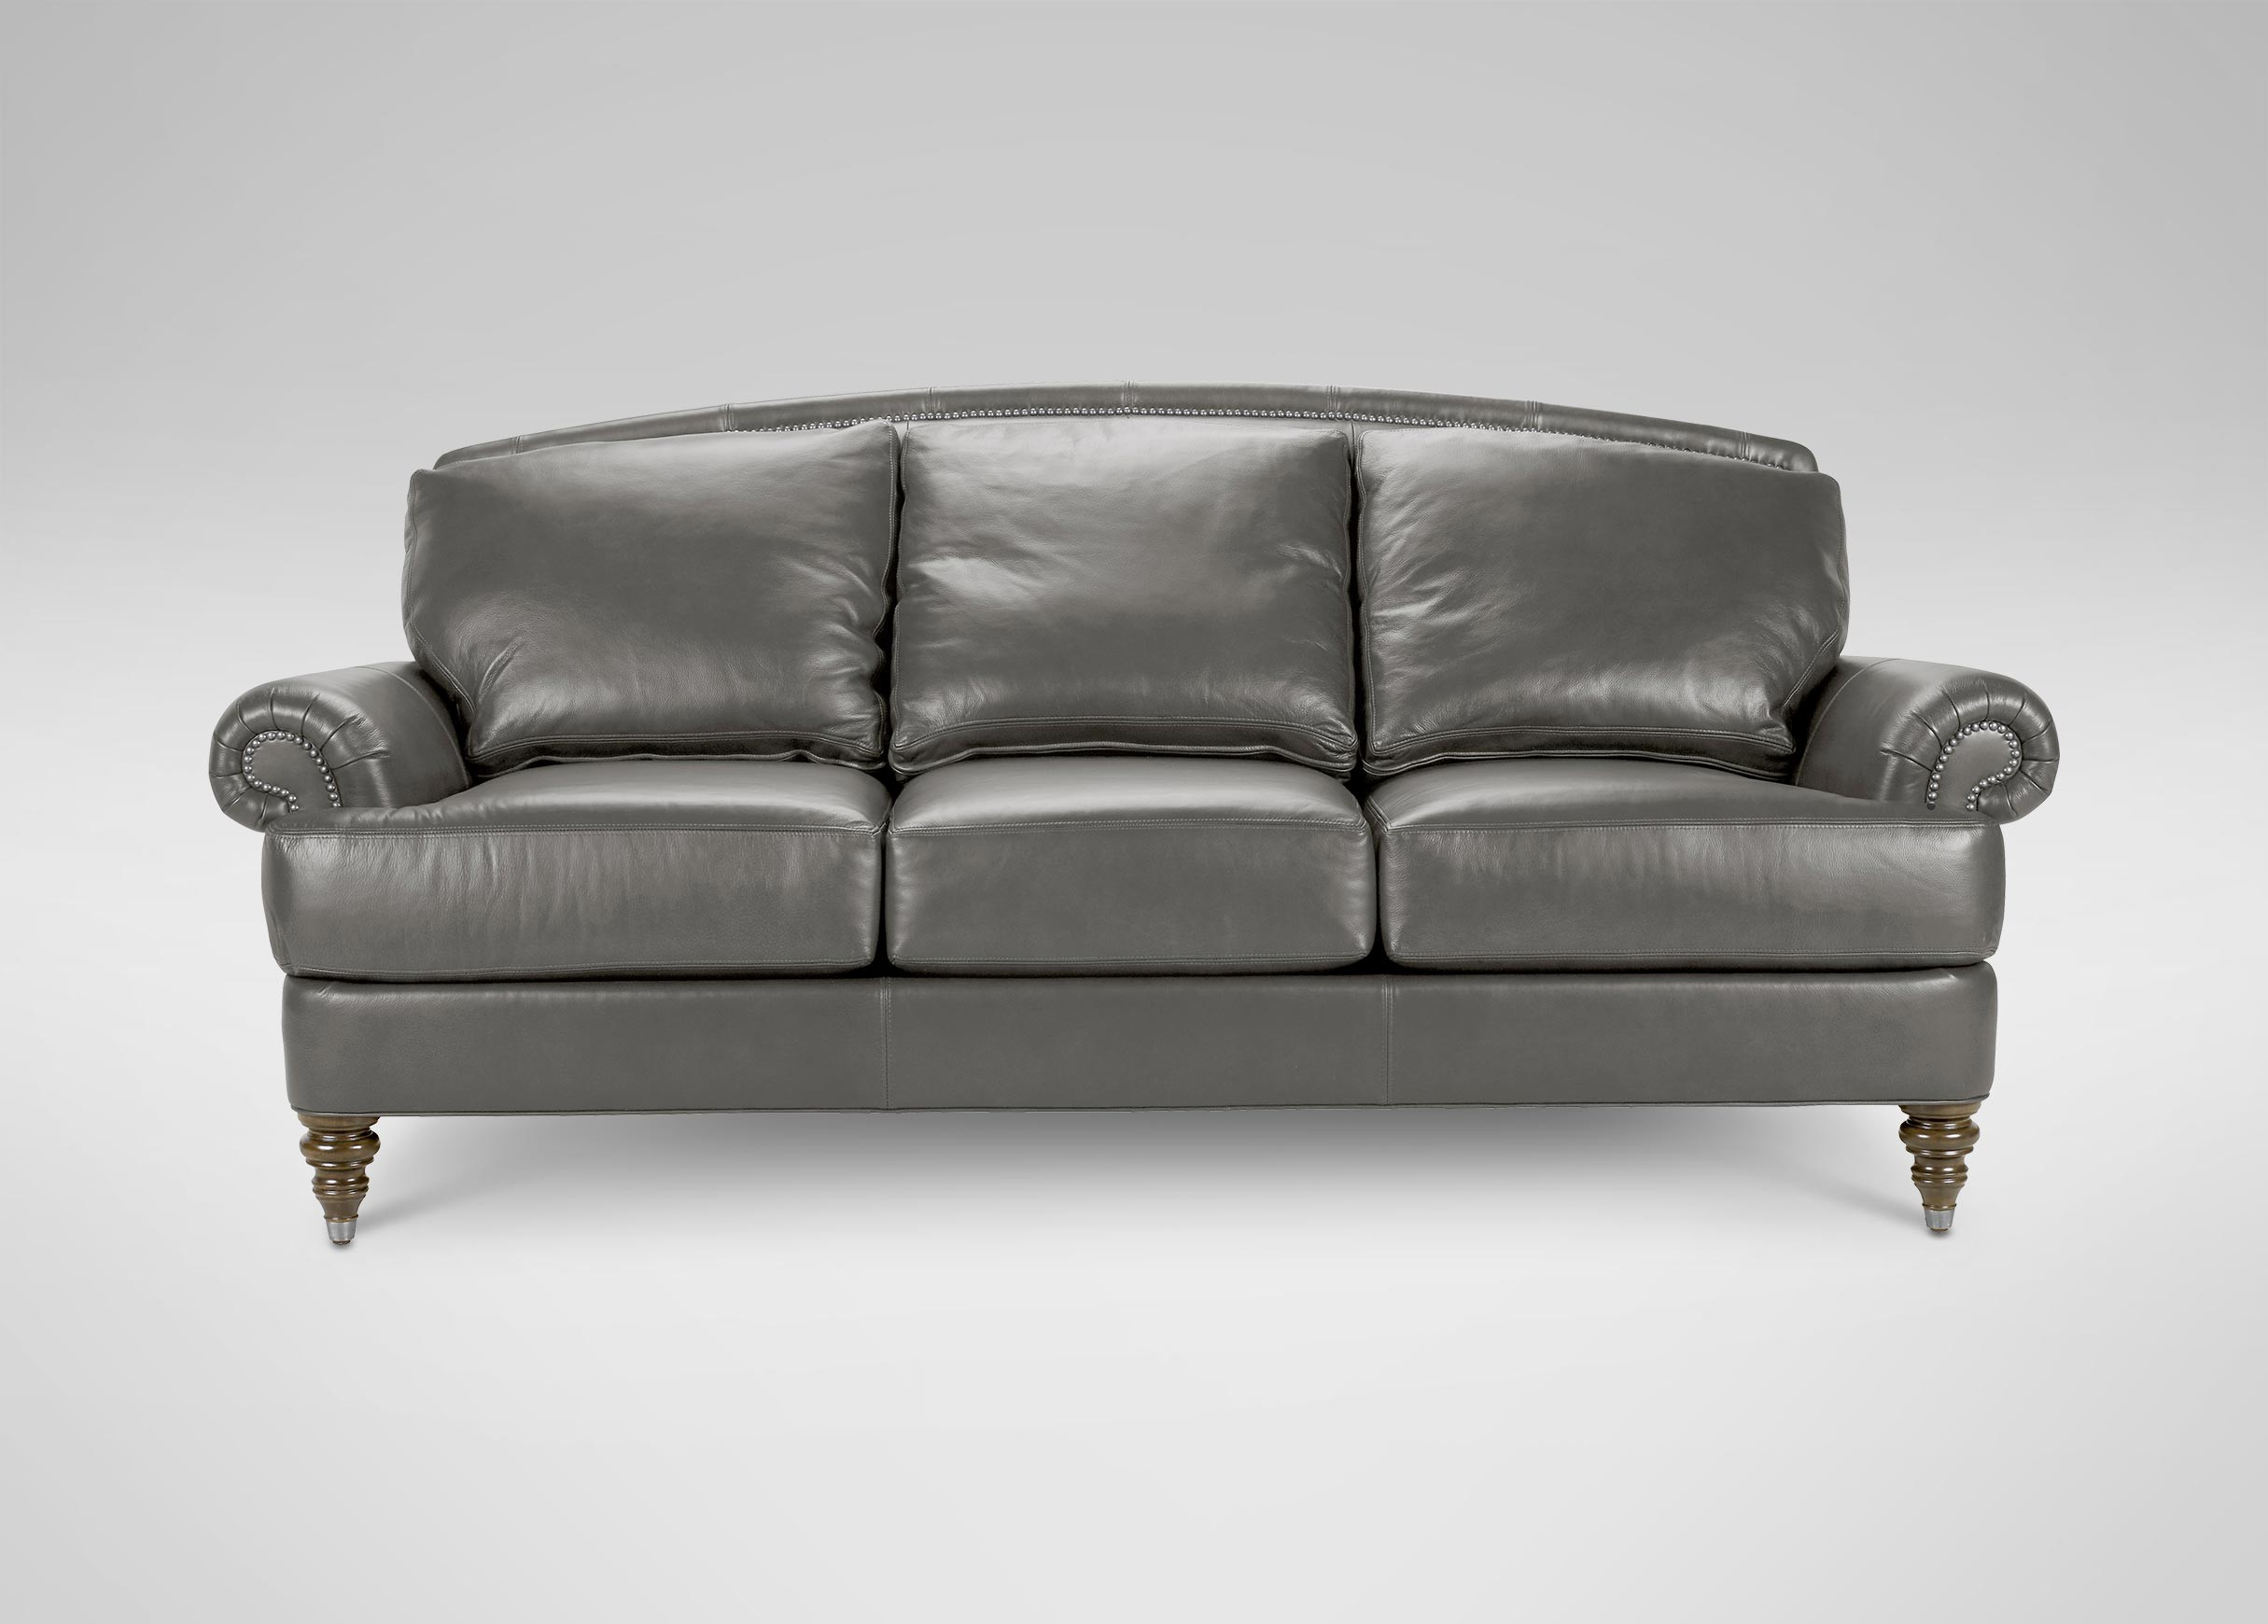 Ethan Allen Leather sofa top sofas and Loveseats Design